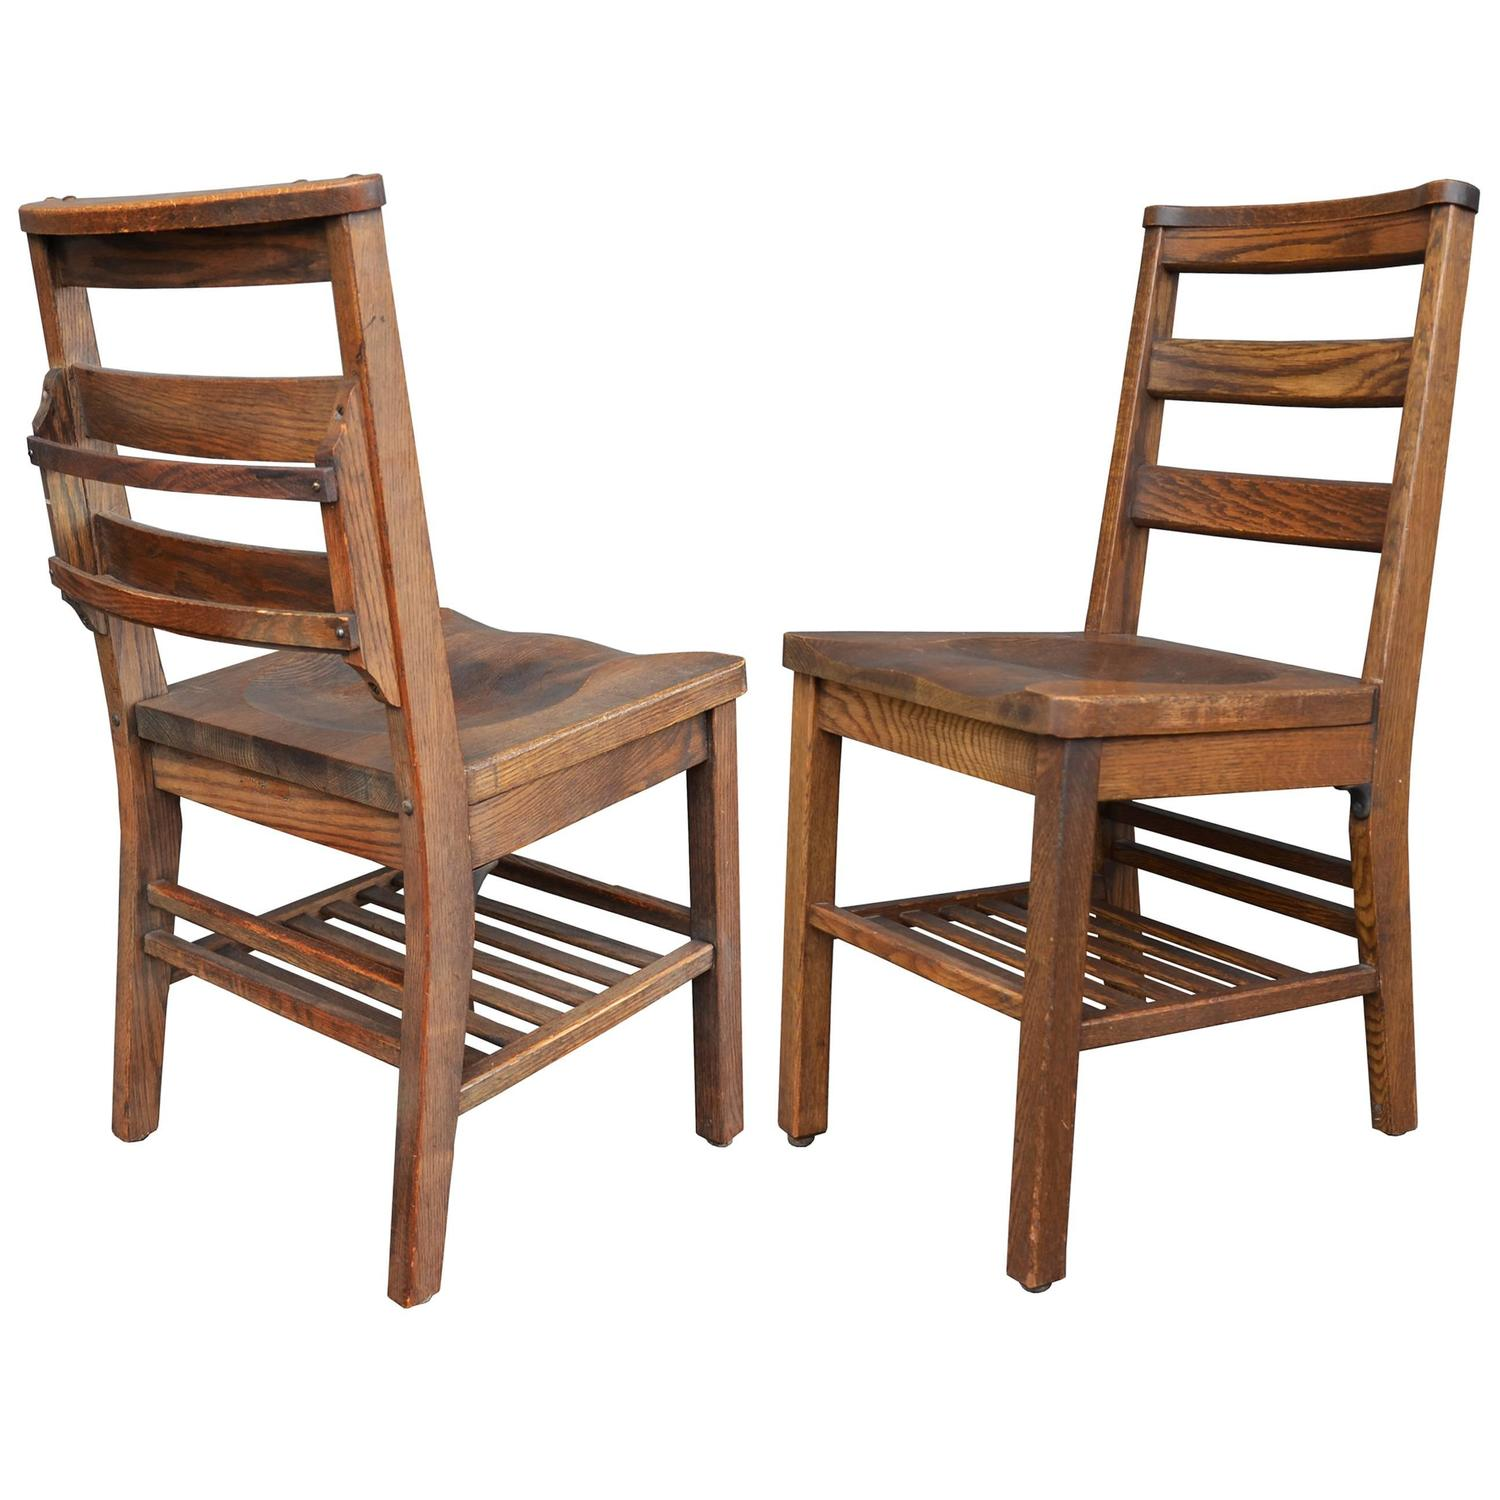 wooden library chair hickory accessories stained oak with book holder by milton